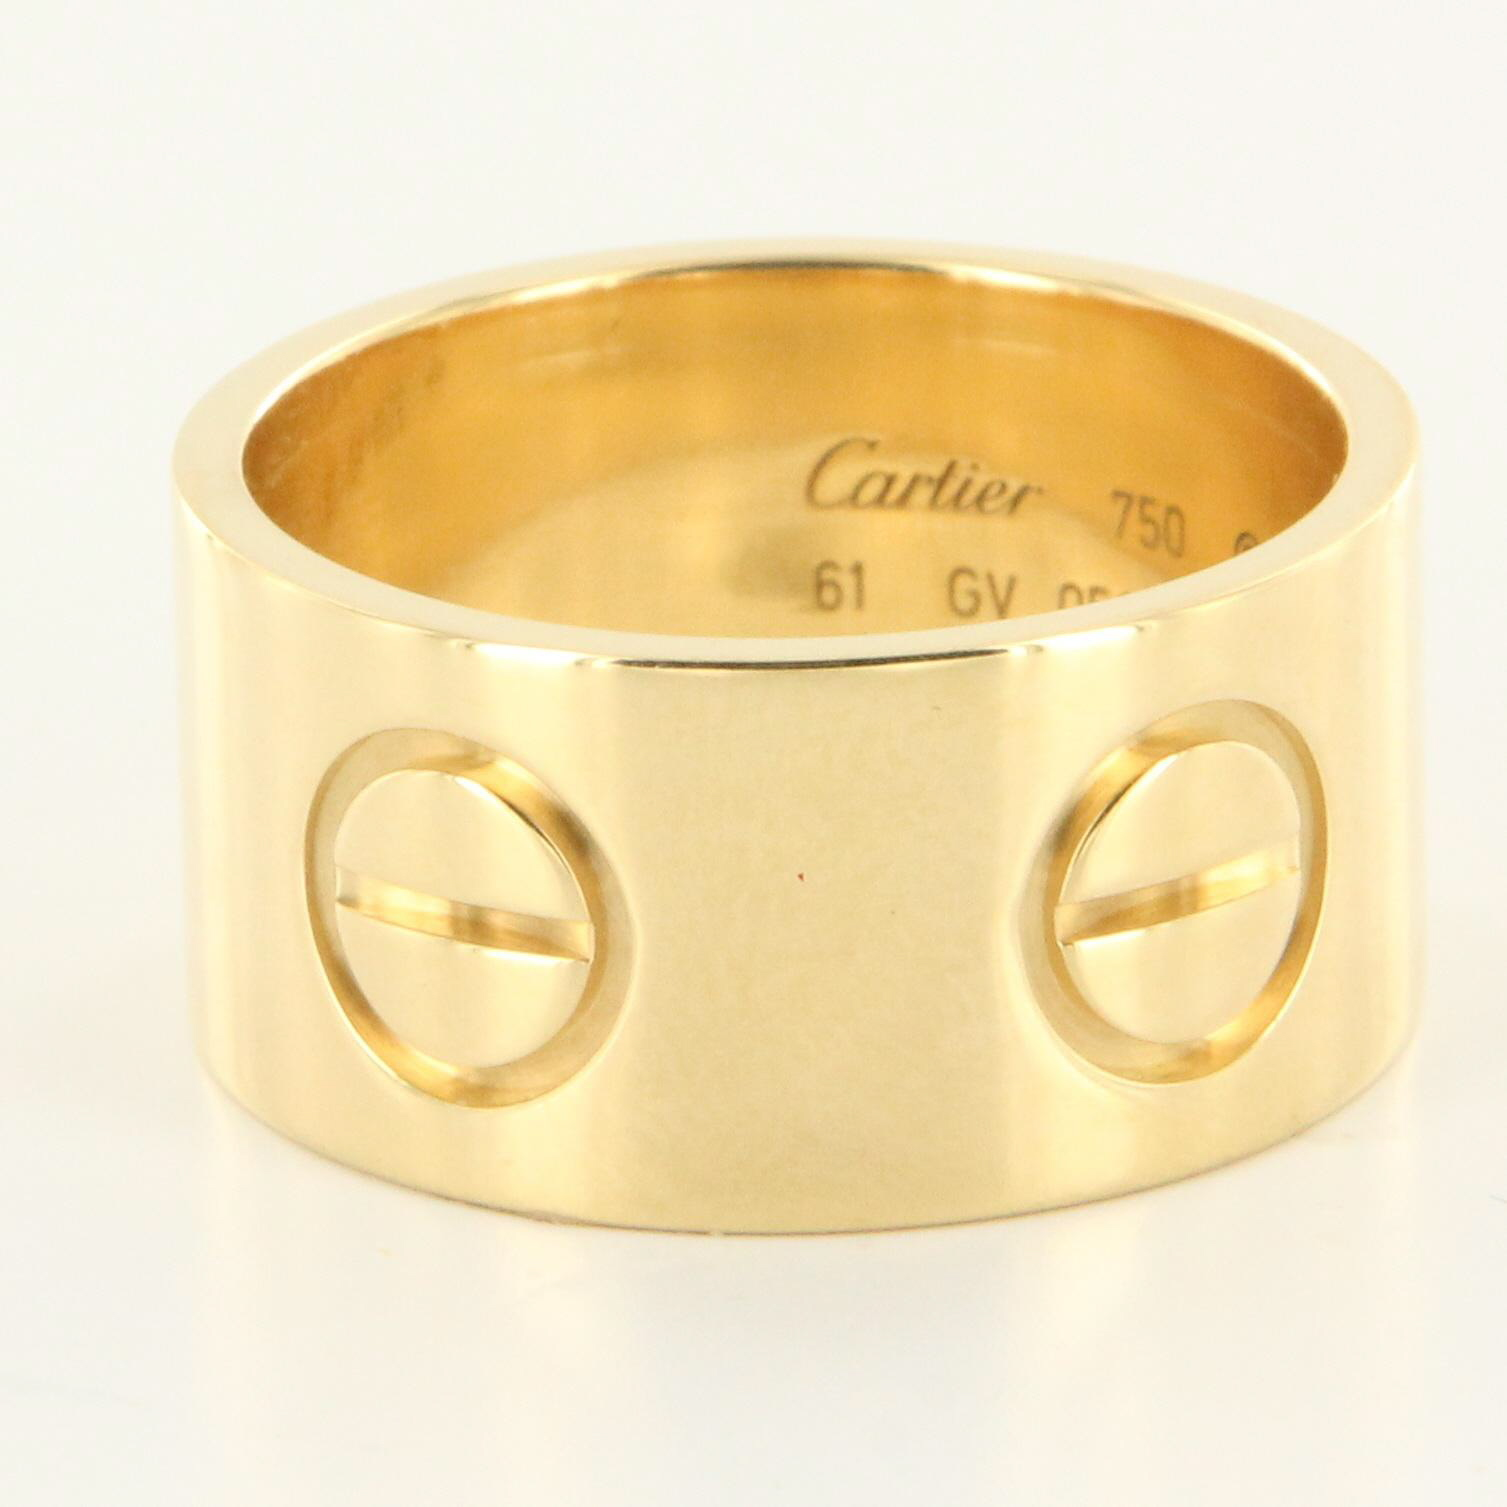 cartier designer jewelry  ring designer